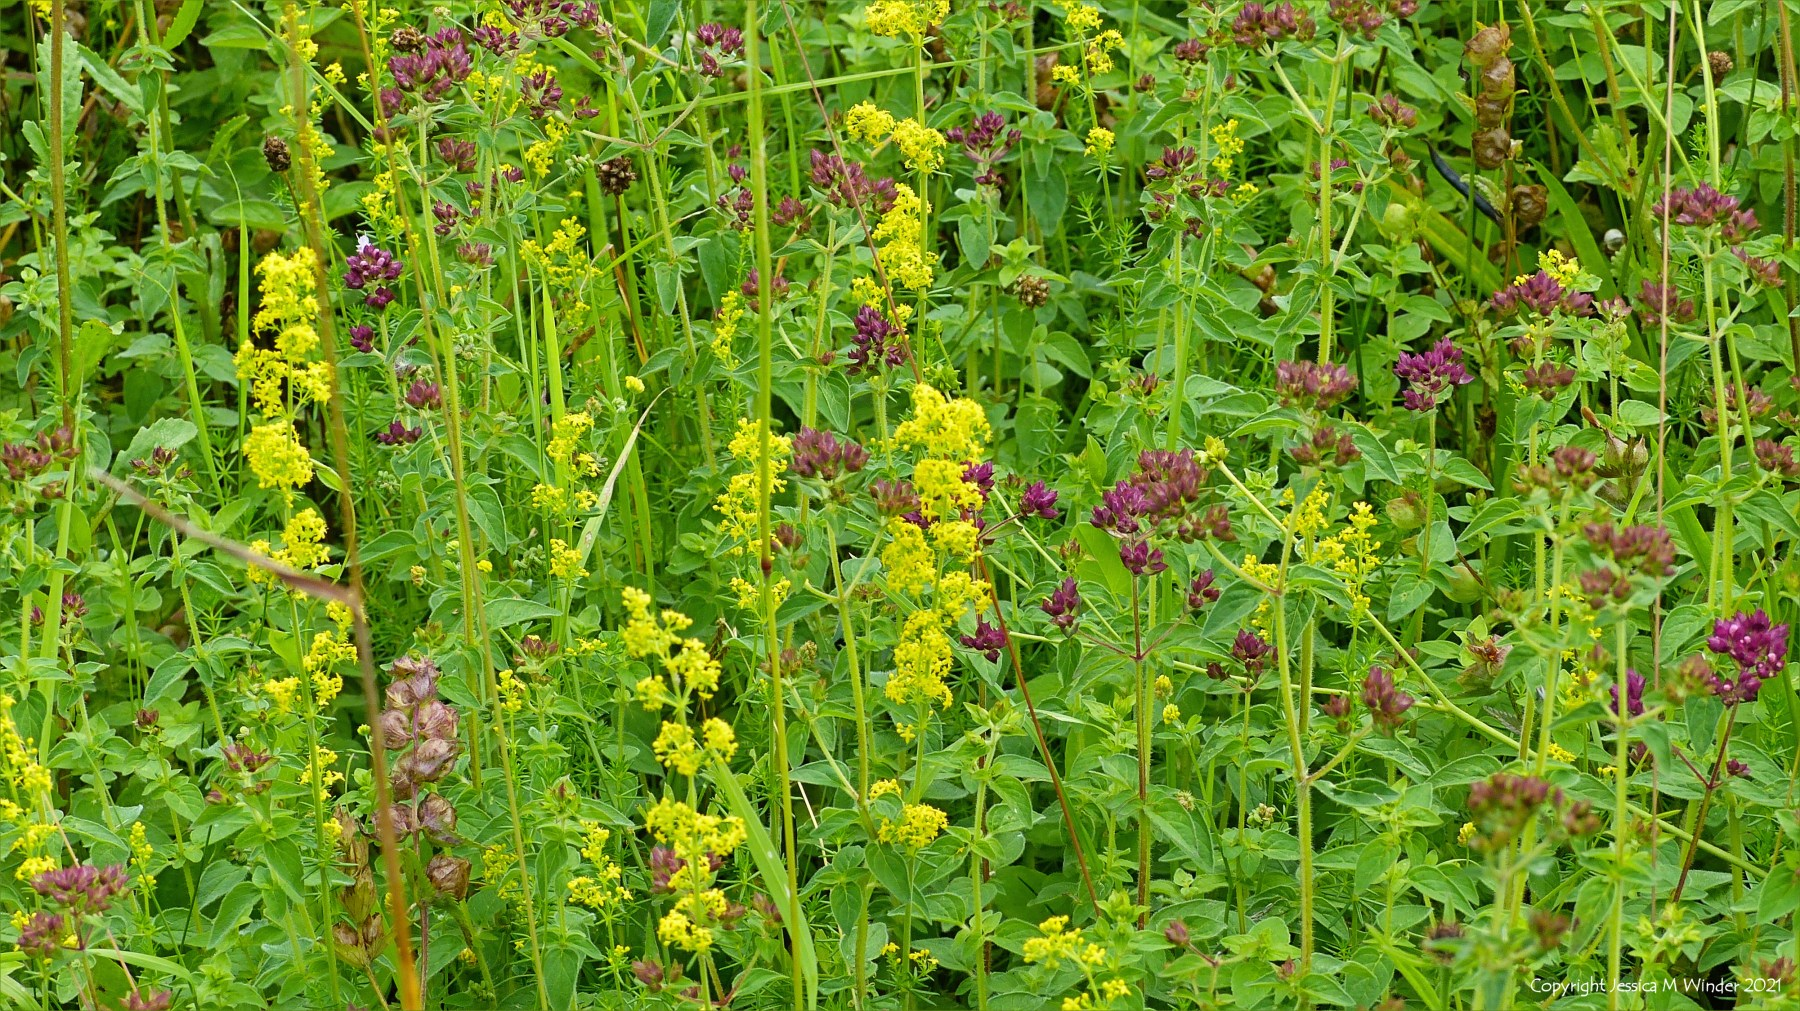 Yellow flowers of Lady's Bedstraw with Wild Marjoram